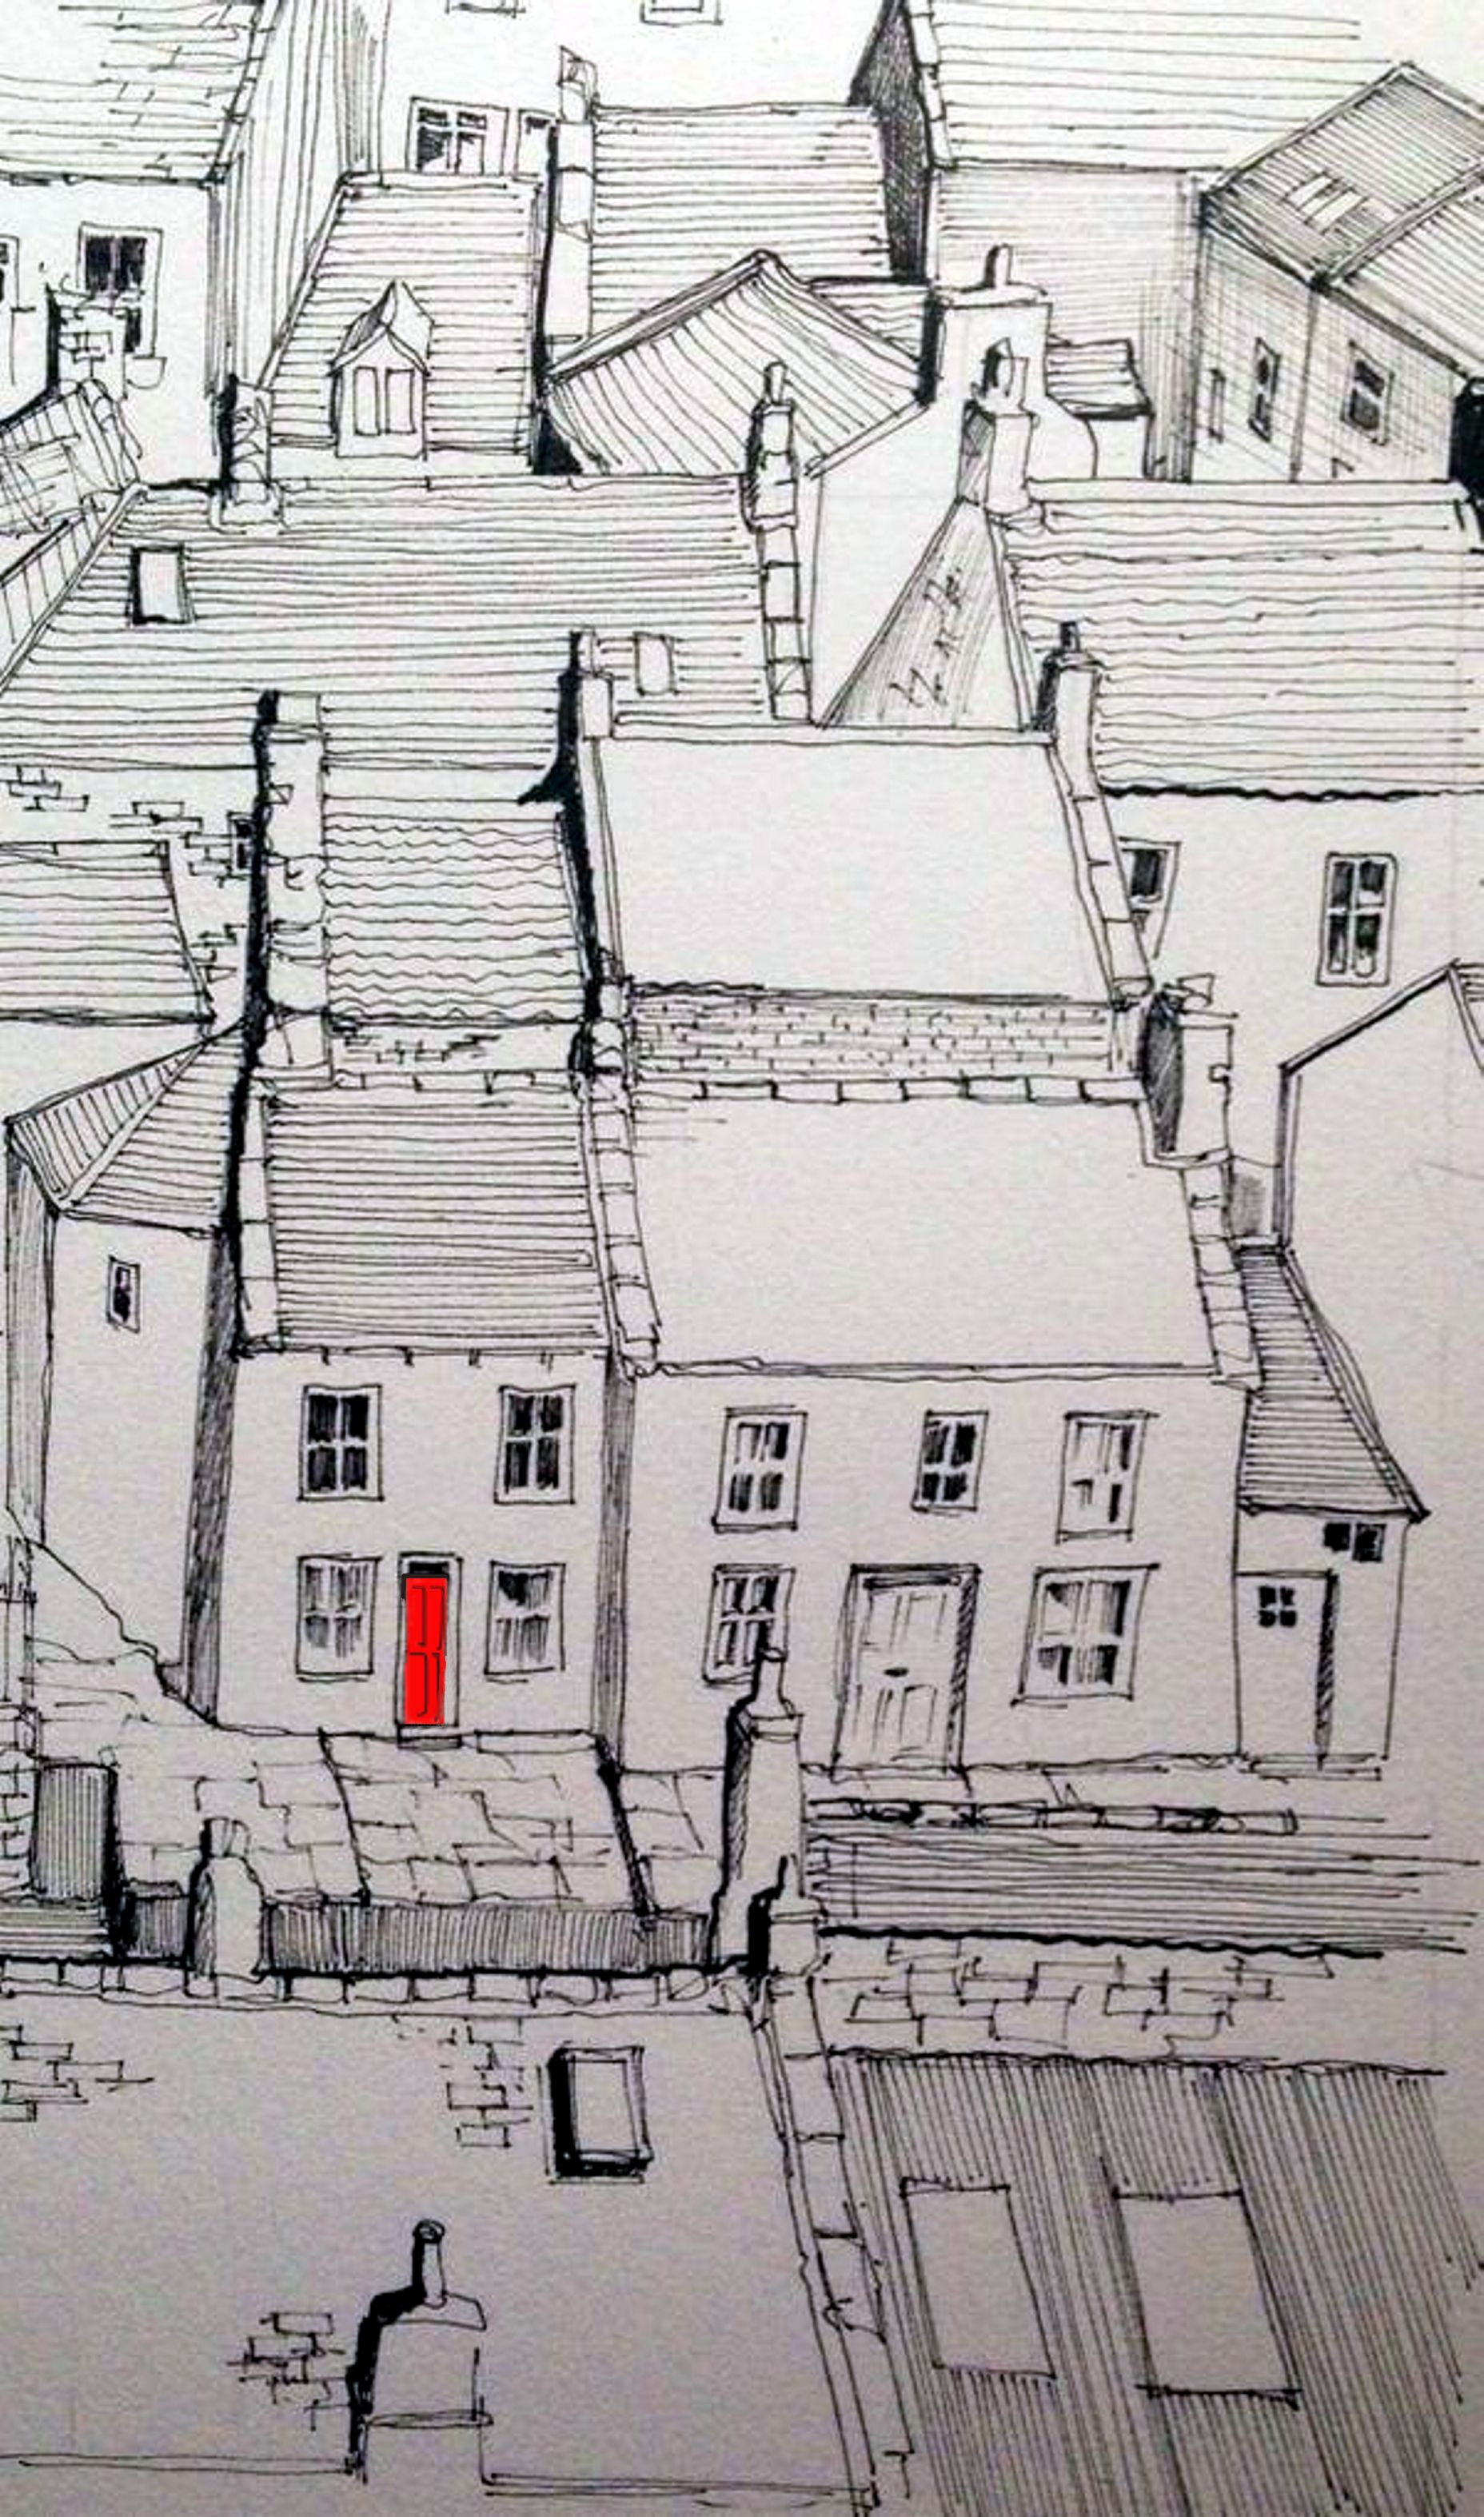 A line sketch of staithes with one red door urban sketching